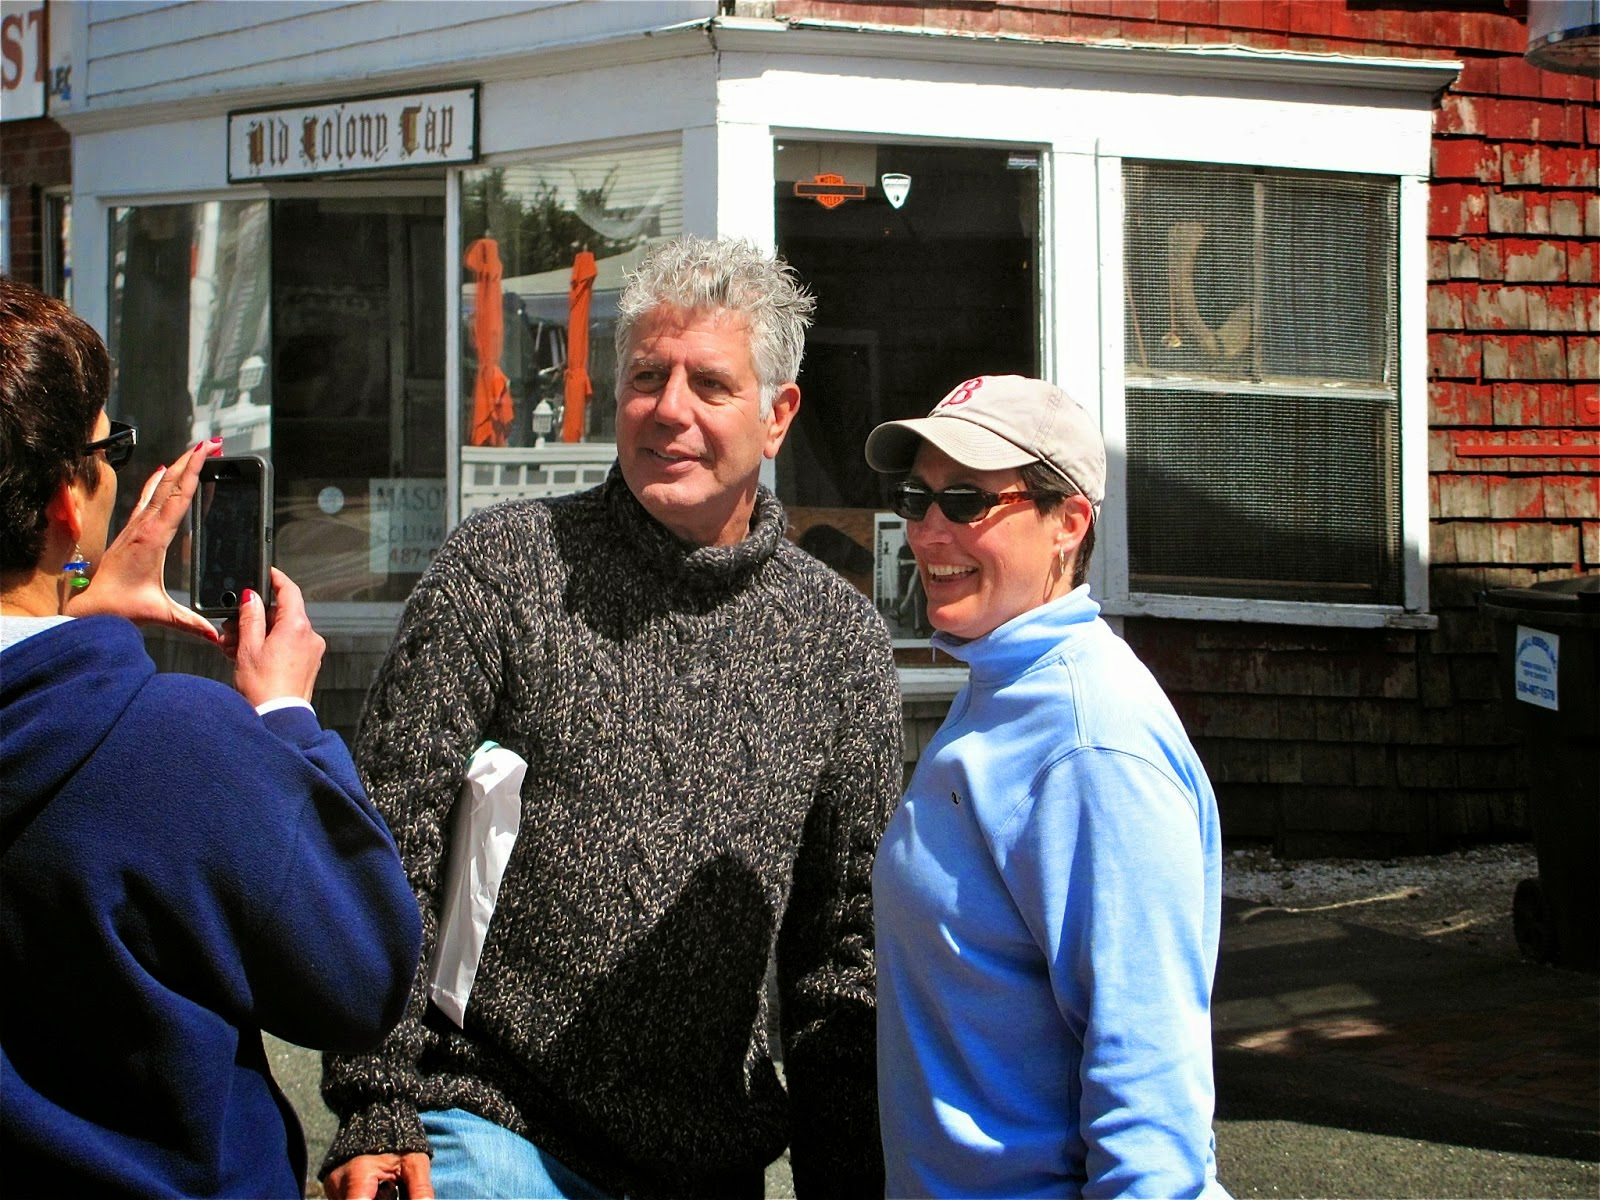 Famous foodie Anthony Bourdain's kitchen career began in Provincetown, and soon we'll see it on TV